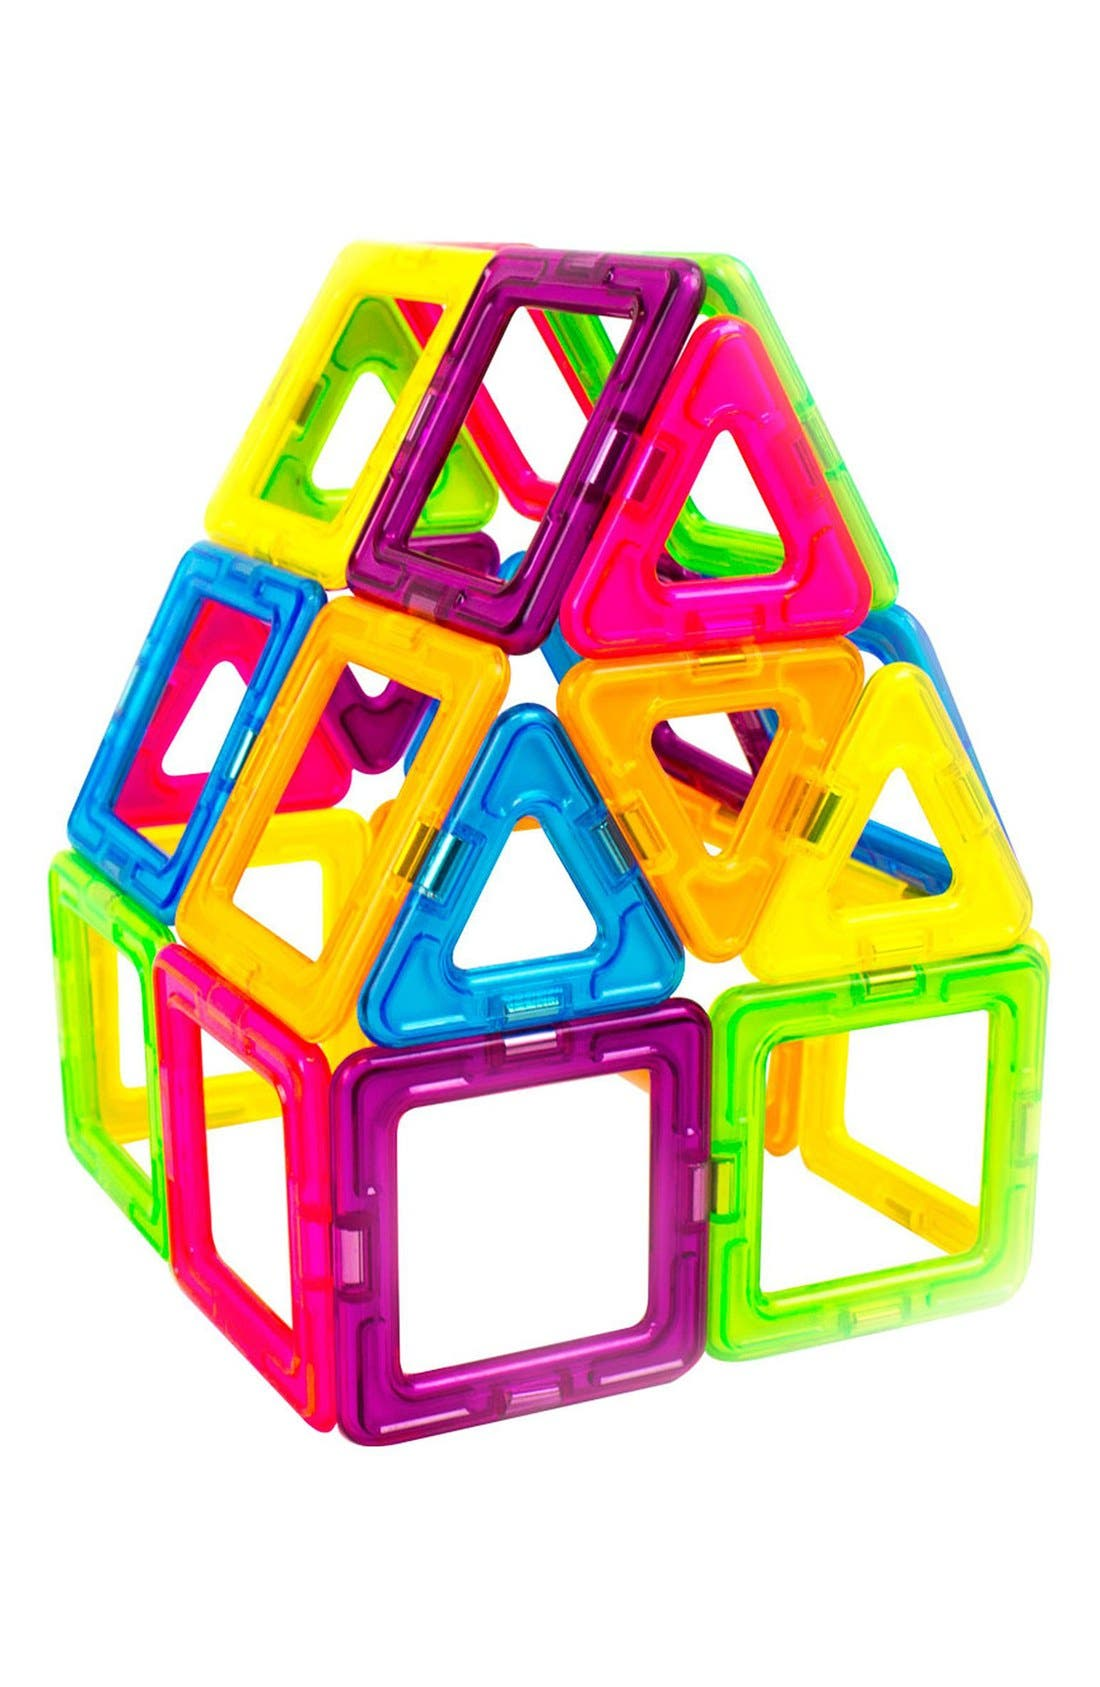 'Creator' Neon Magnetic 3D Construction Set,                             Alternate thumbnail 4, color,                             NEON RAINBOW